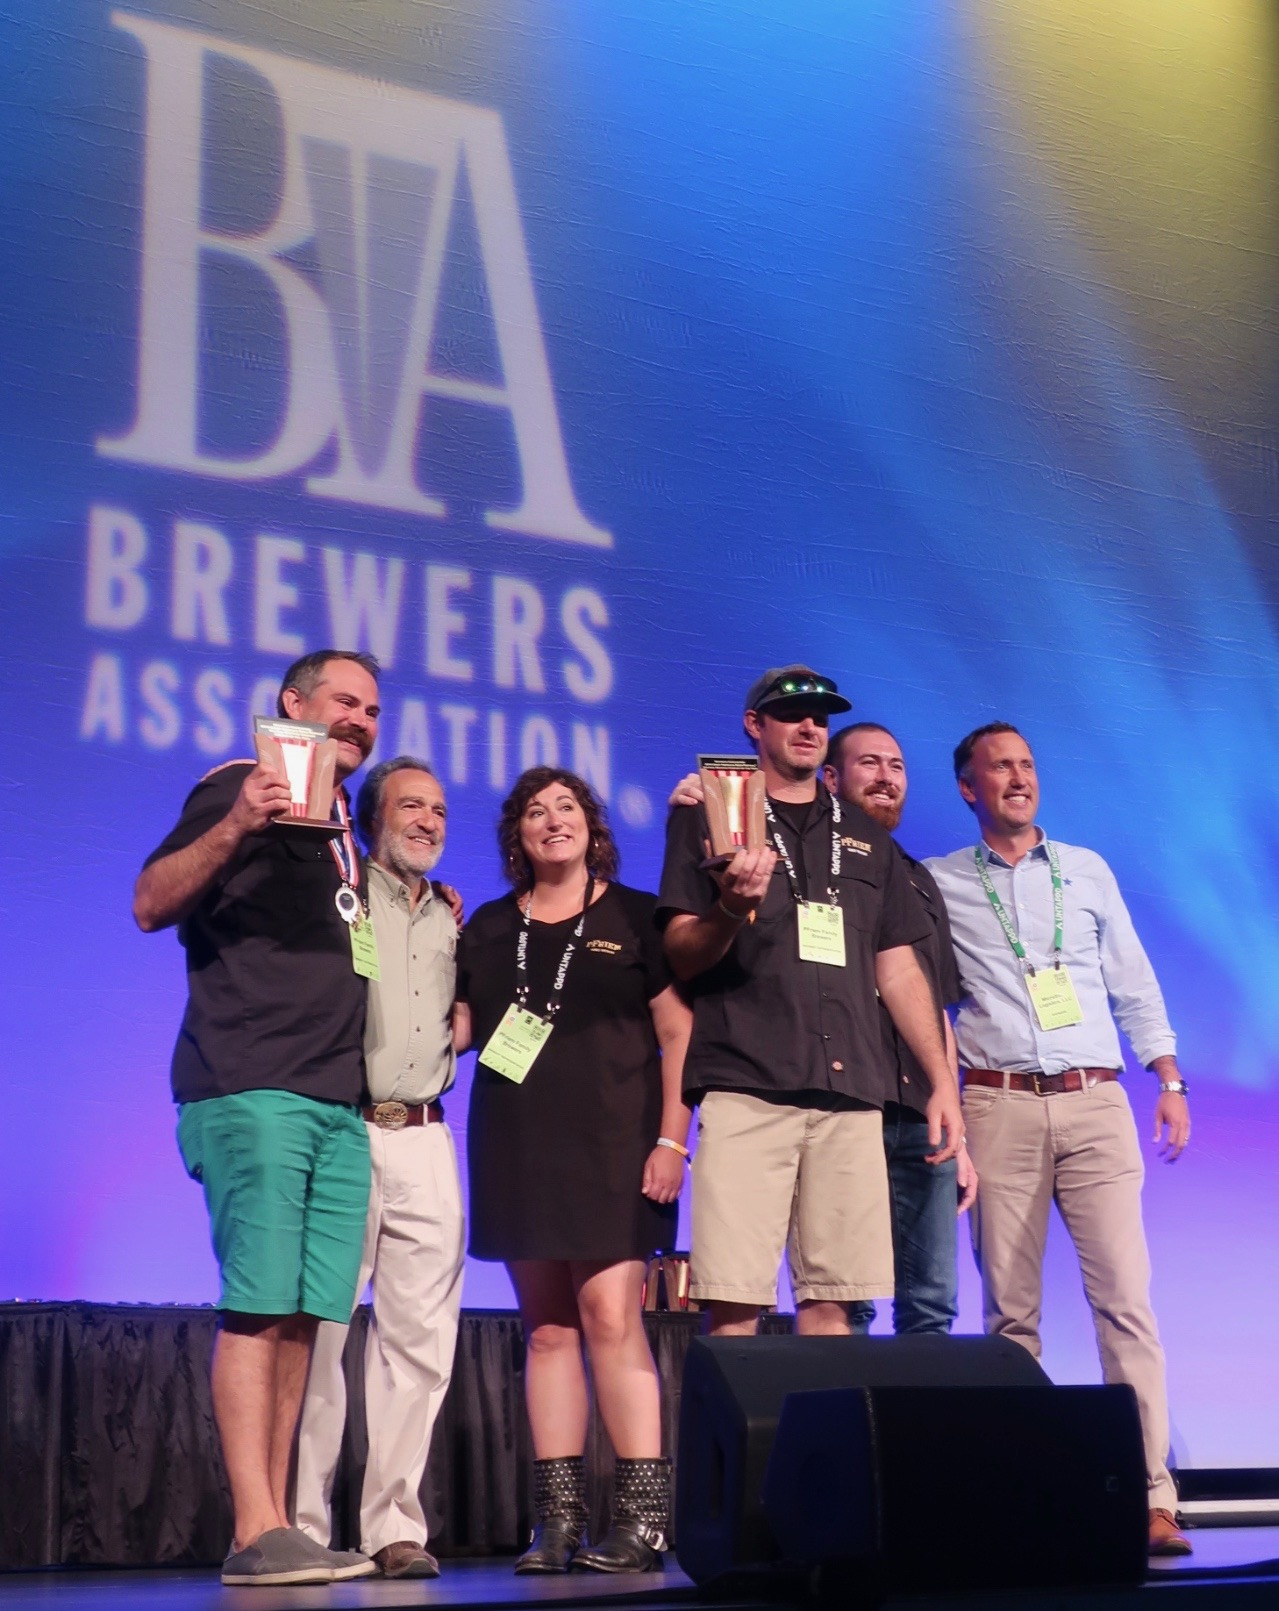 pFriem Family Brewers take home the Mid Size Brewing Company of the Year Award at the 2018 Great American Beer Festival.